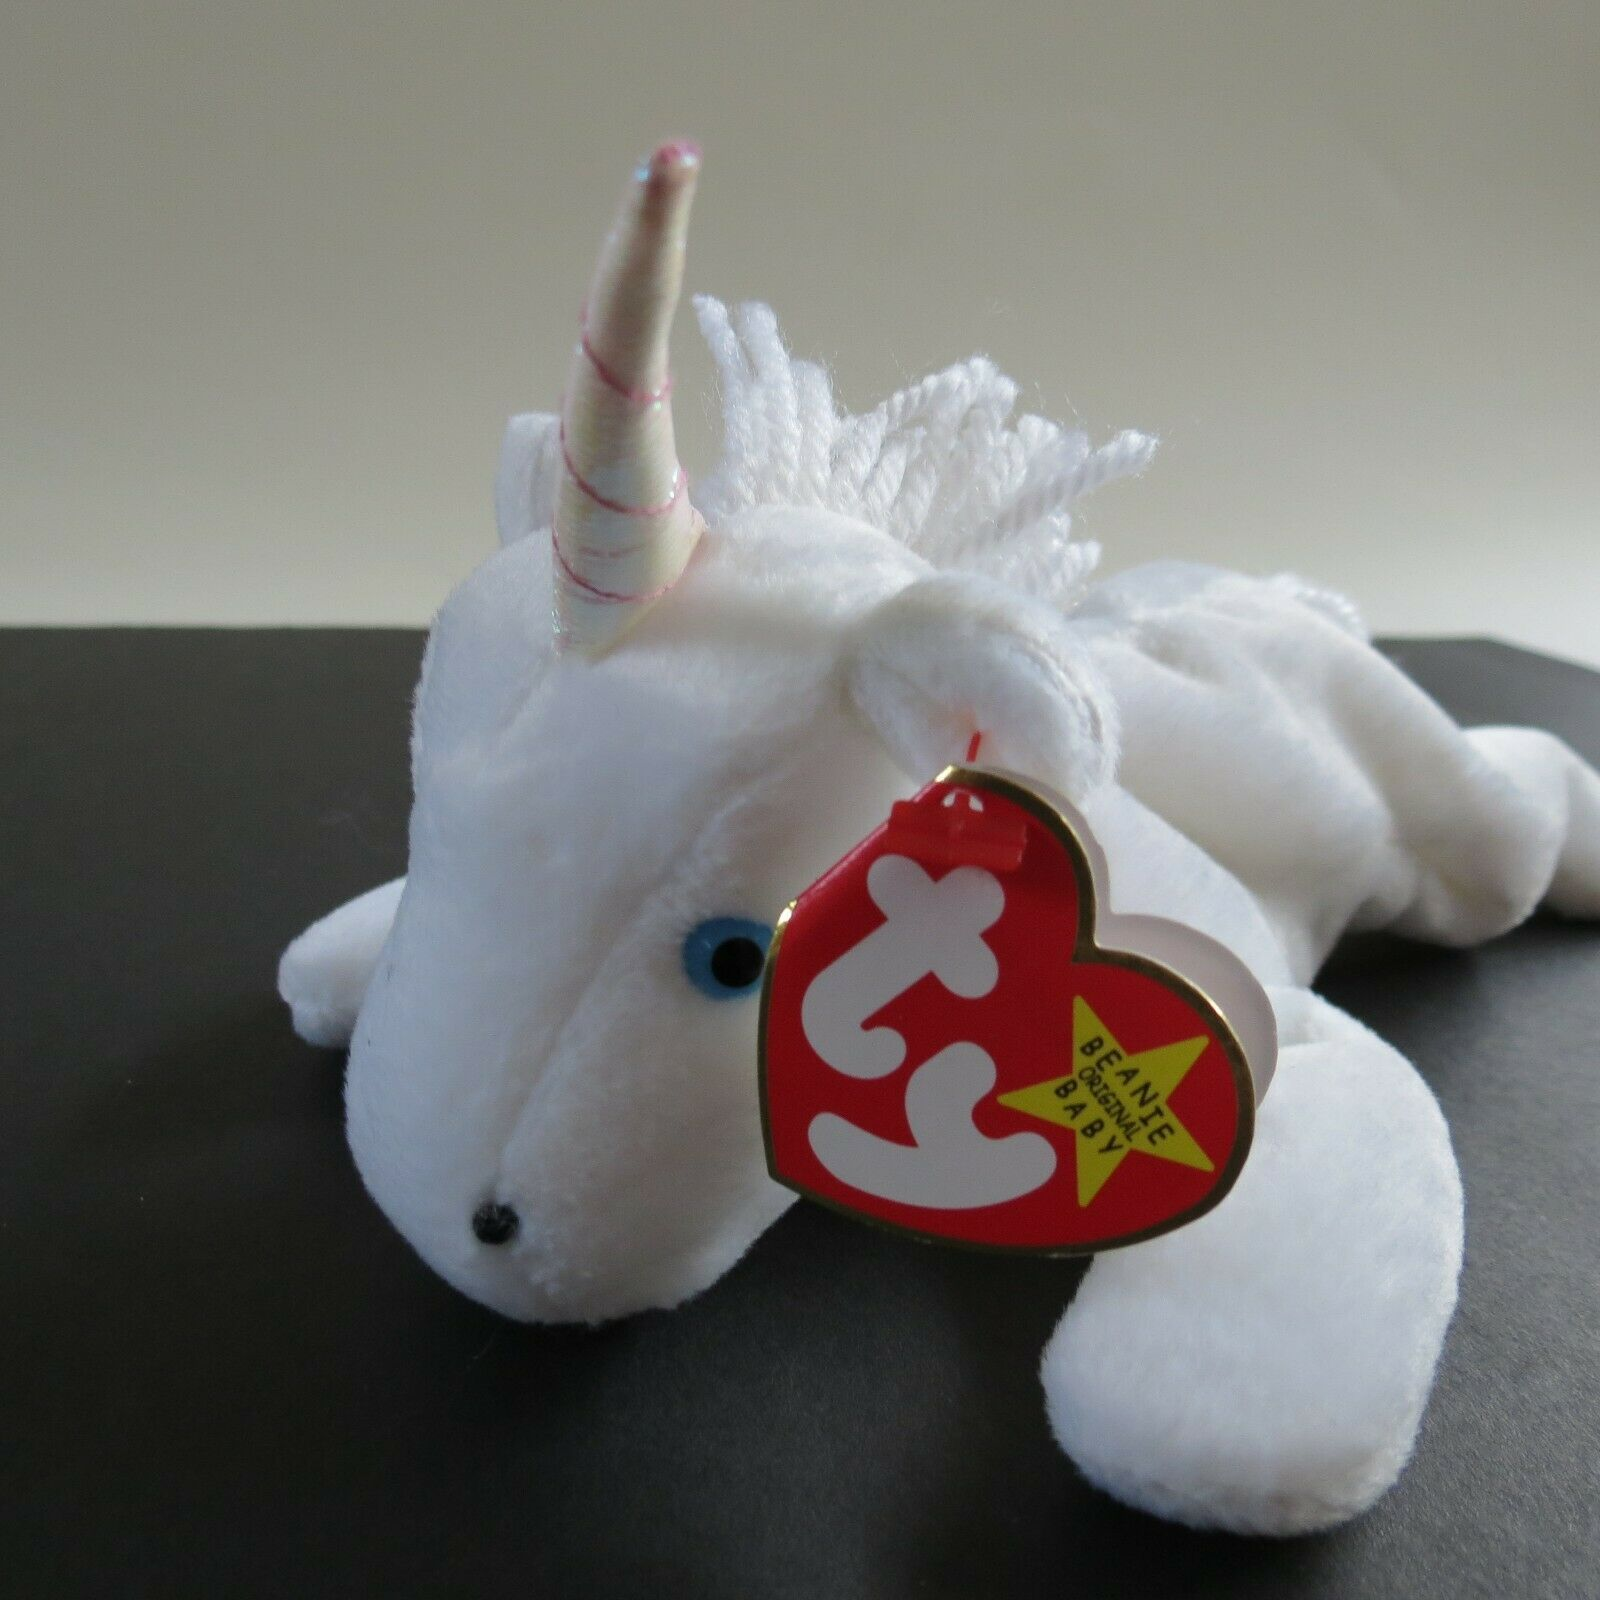 Top 10 Most Valuable Ty Beanie Babies  #7 MYSTIC THE UNICORN! (With Errors) Mint